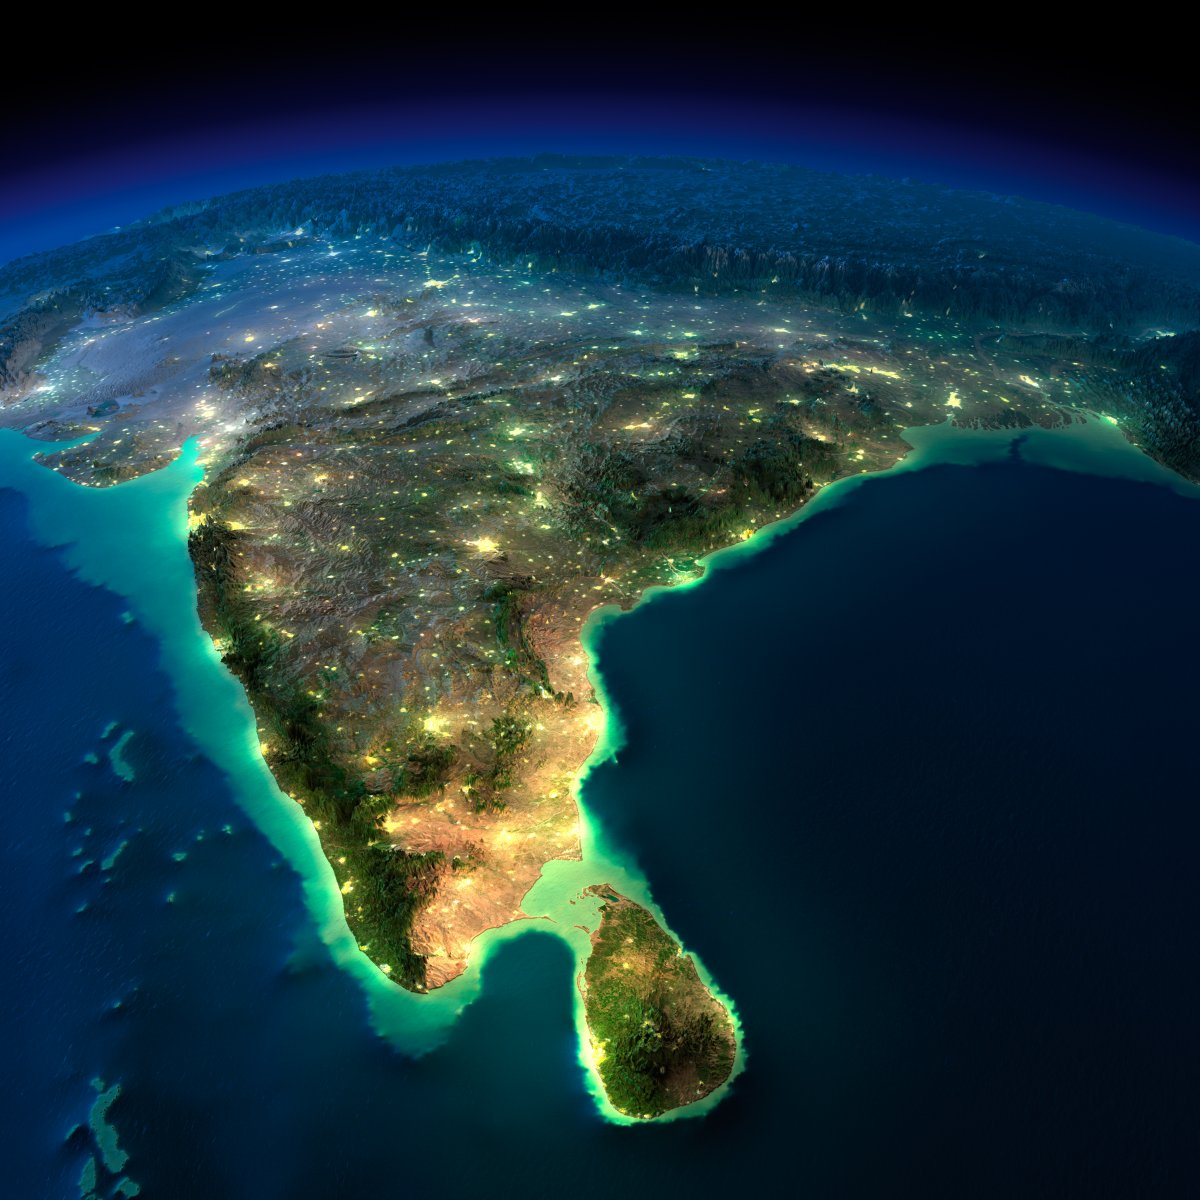 earth night photos india